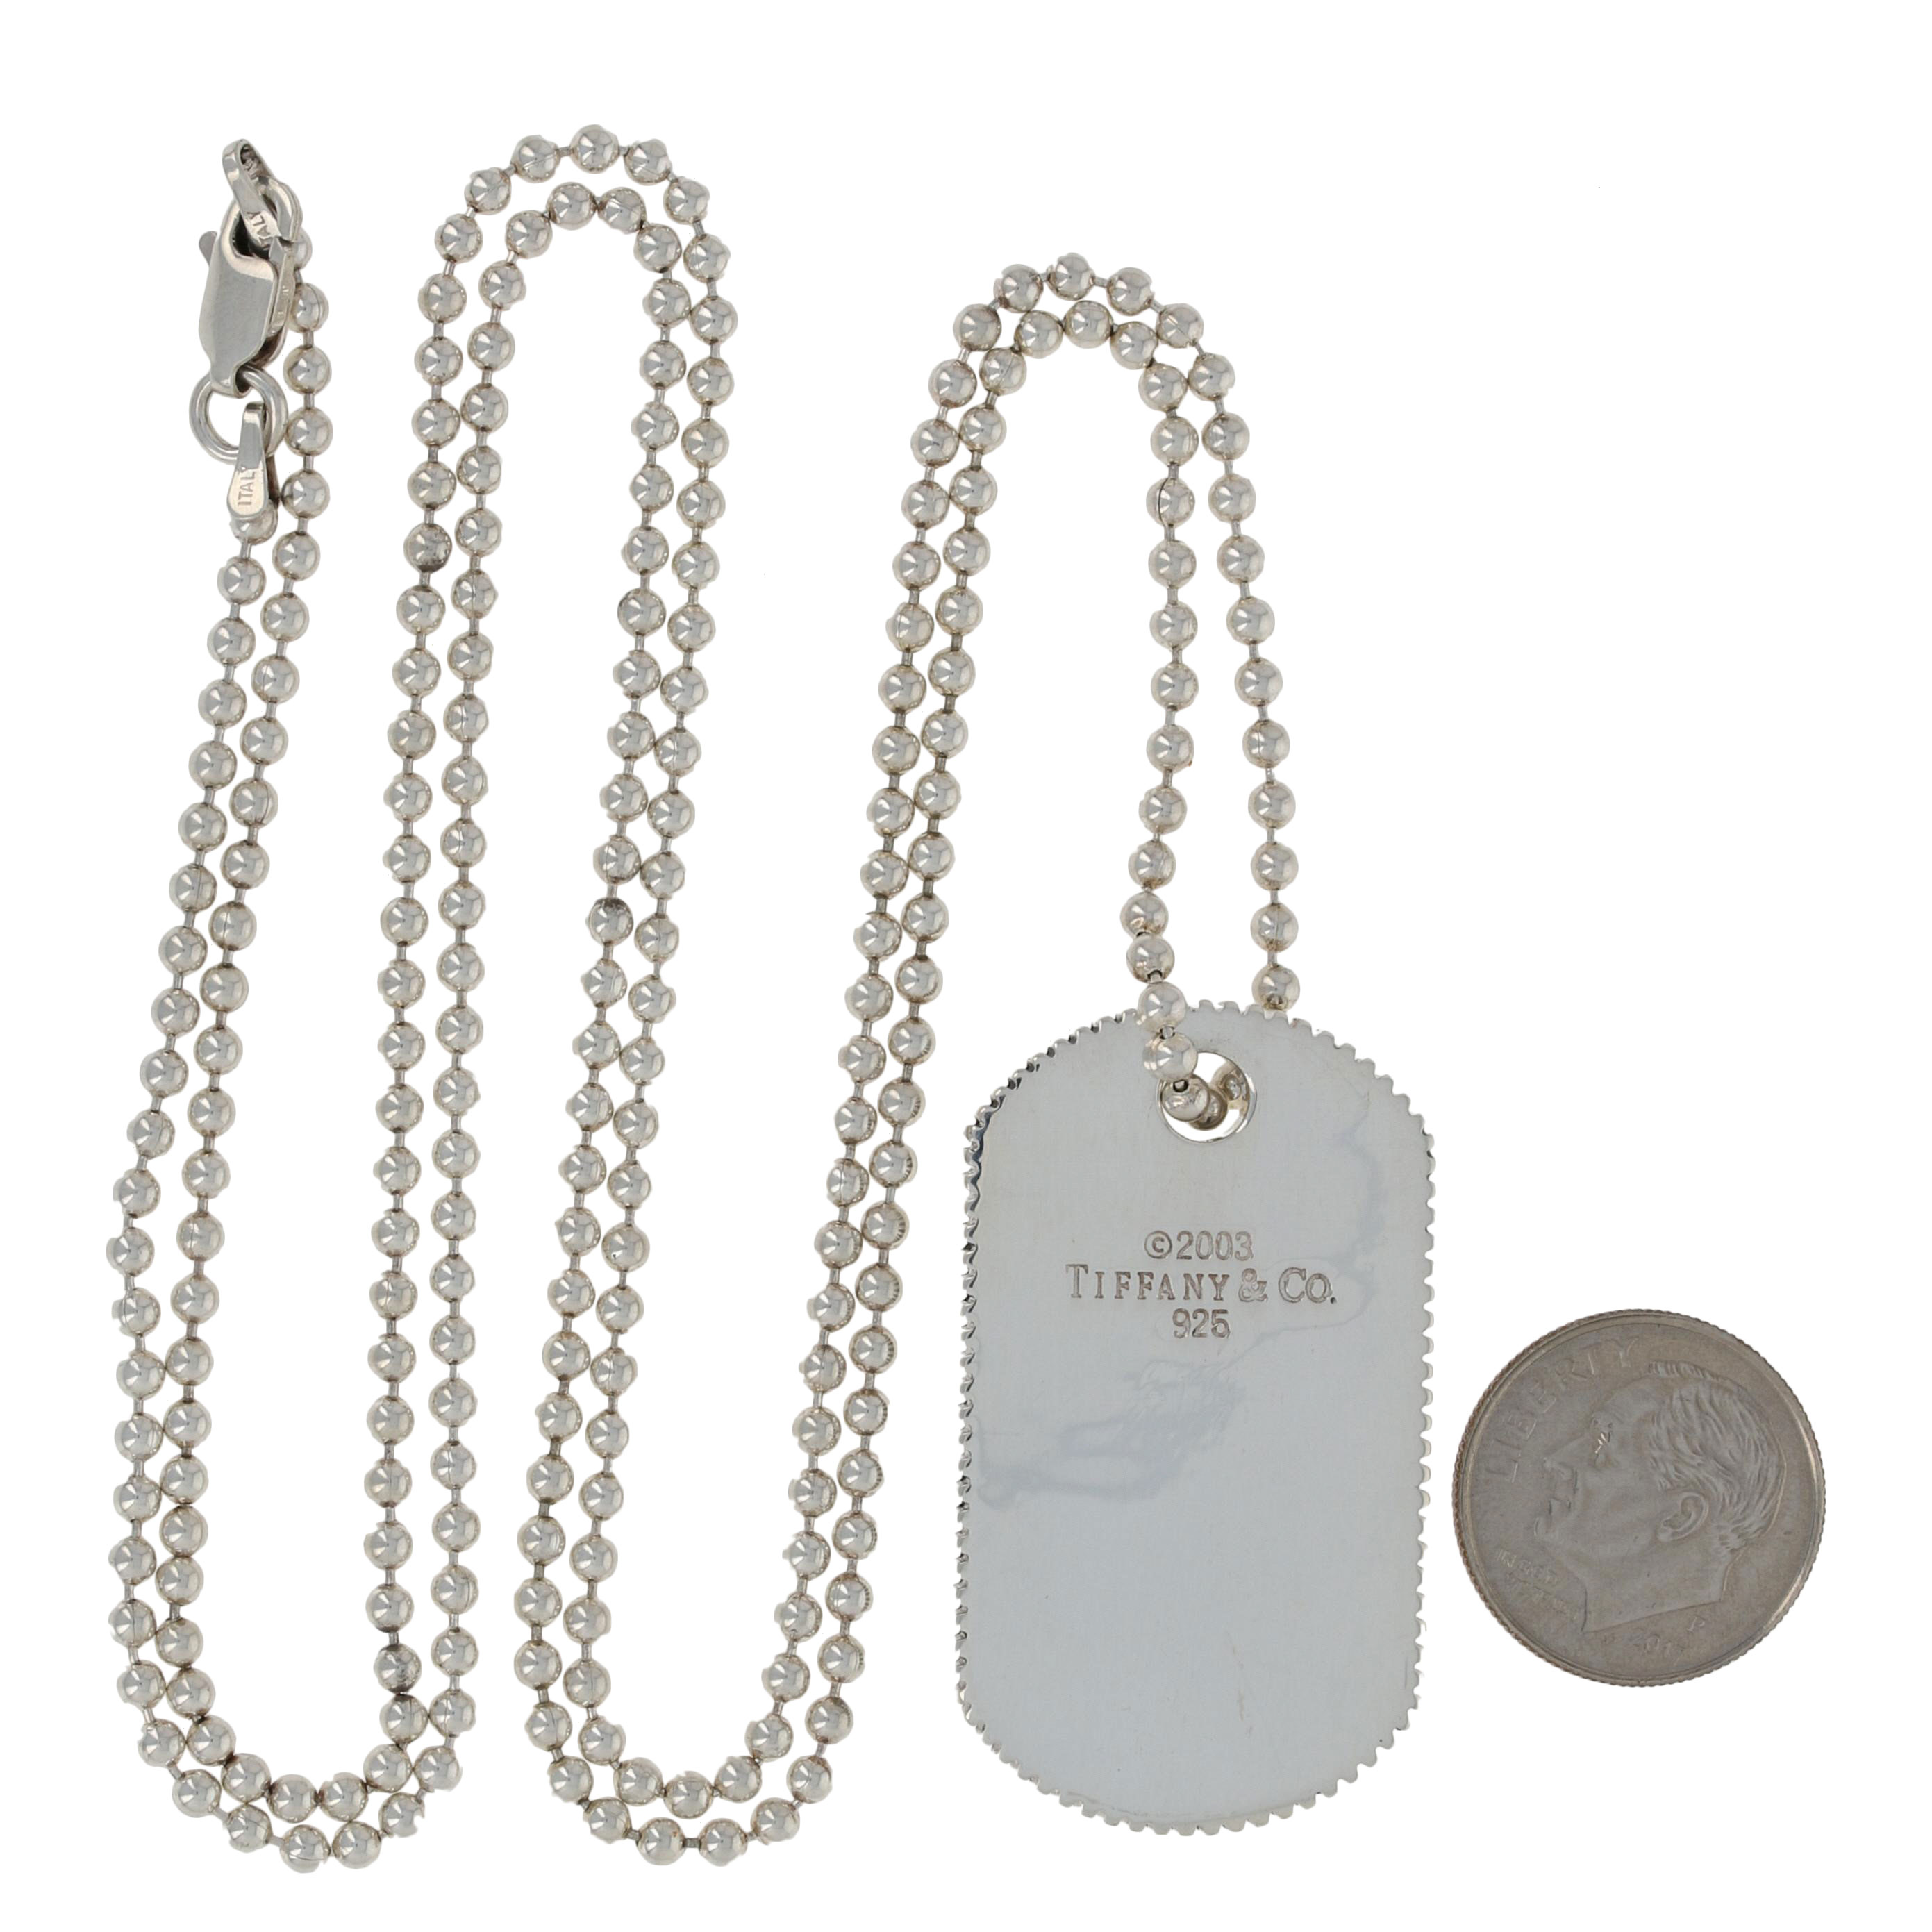 be46662b2 Tiffany & Co. Men's Coin Edge Tag Pendant Necklace Sterling w/Non ...